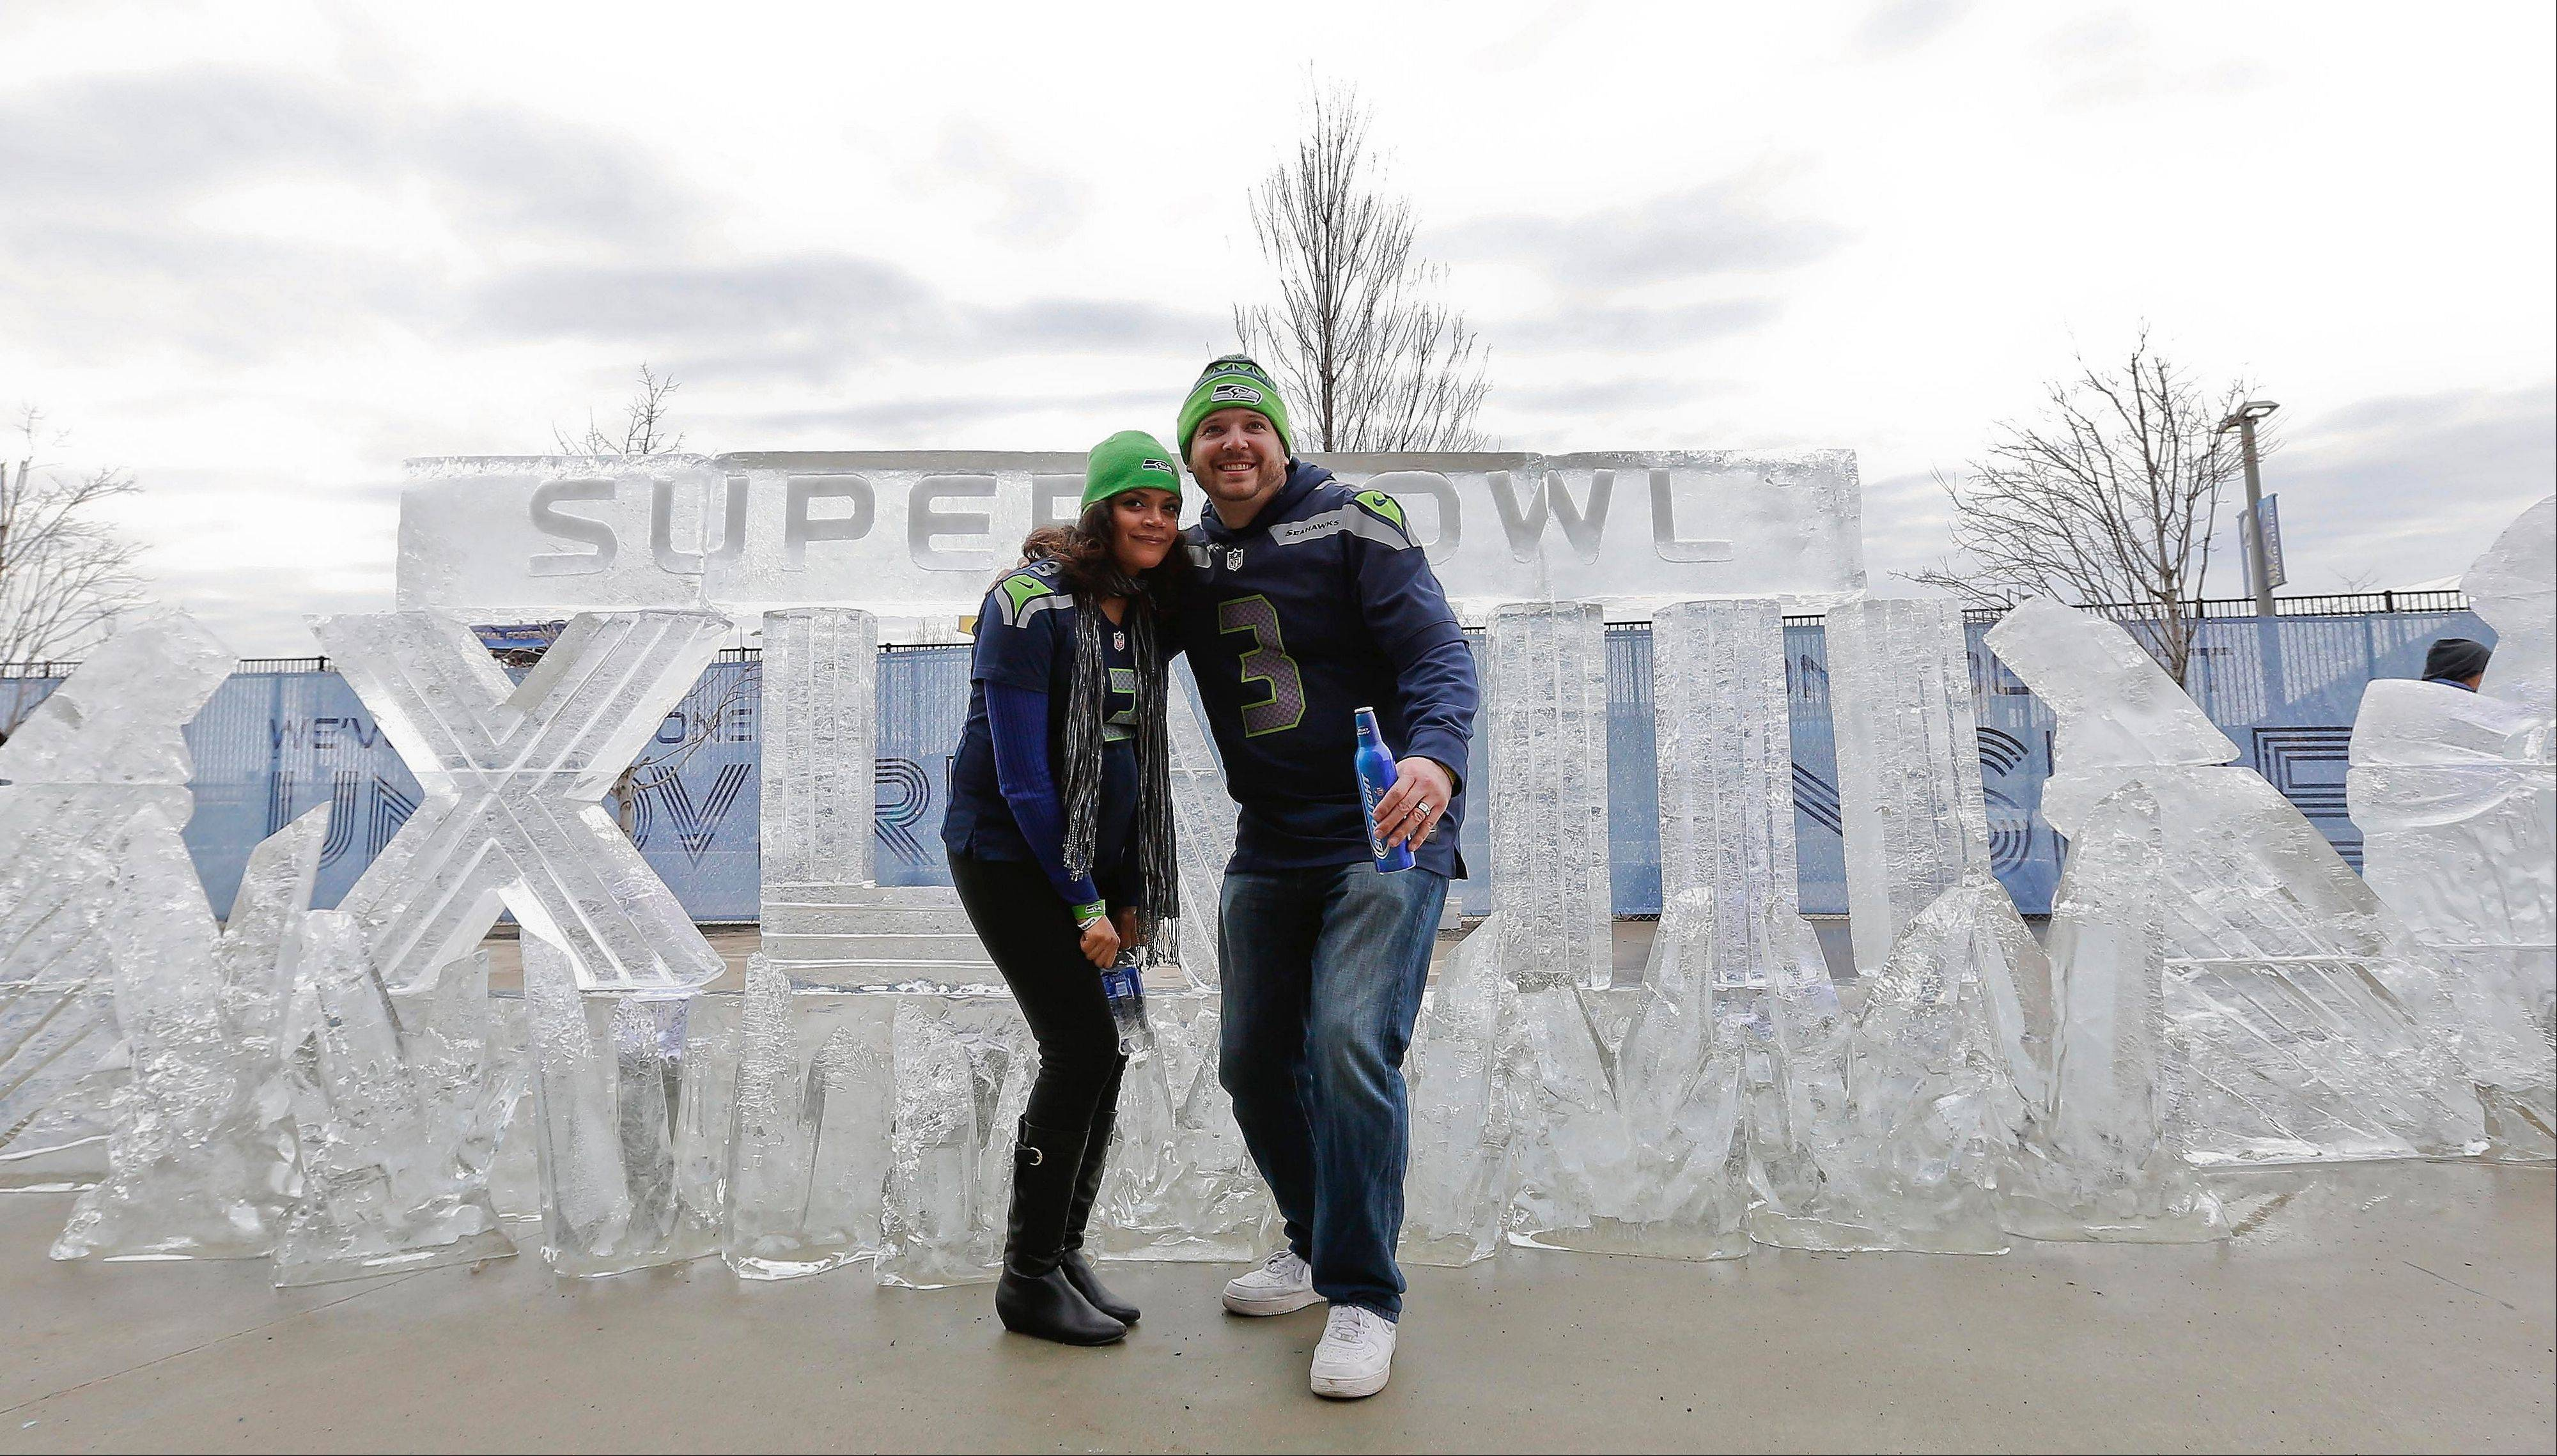 Seattle Seahawks fans Aaron Hulet, right, and Erica Hulet, pose for a picture in front of an ice sculpture before the NFL Super Bowl XLVIII football game.